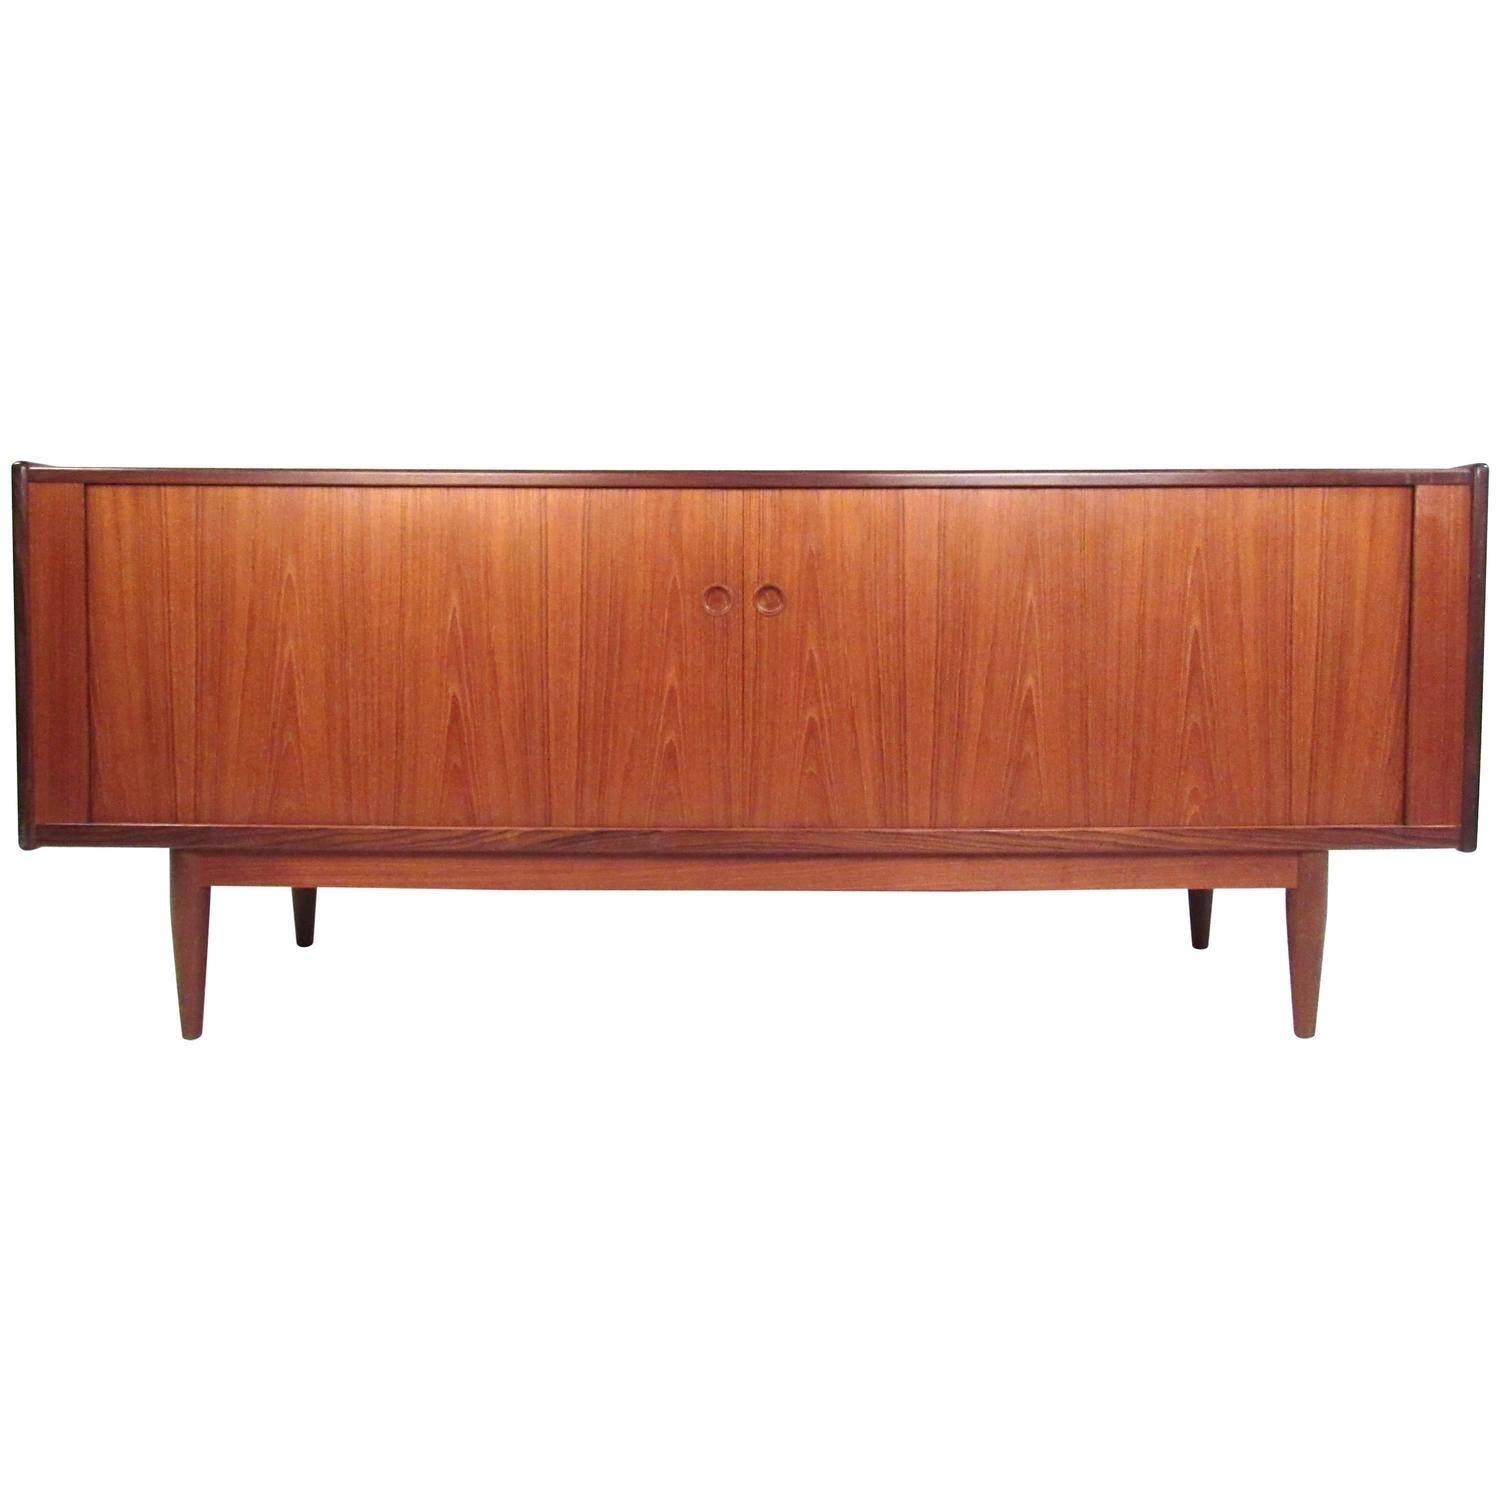 Mid Century Modern Danish Teak Tambour Sideboard In The Style Of Within Mid Century Sideboards (#8 of 15)